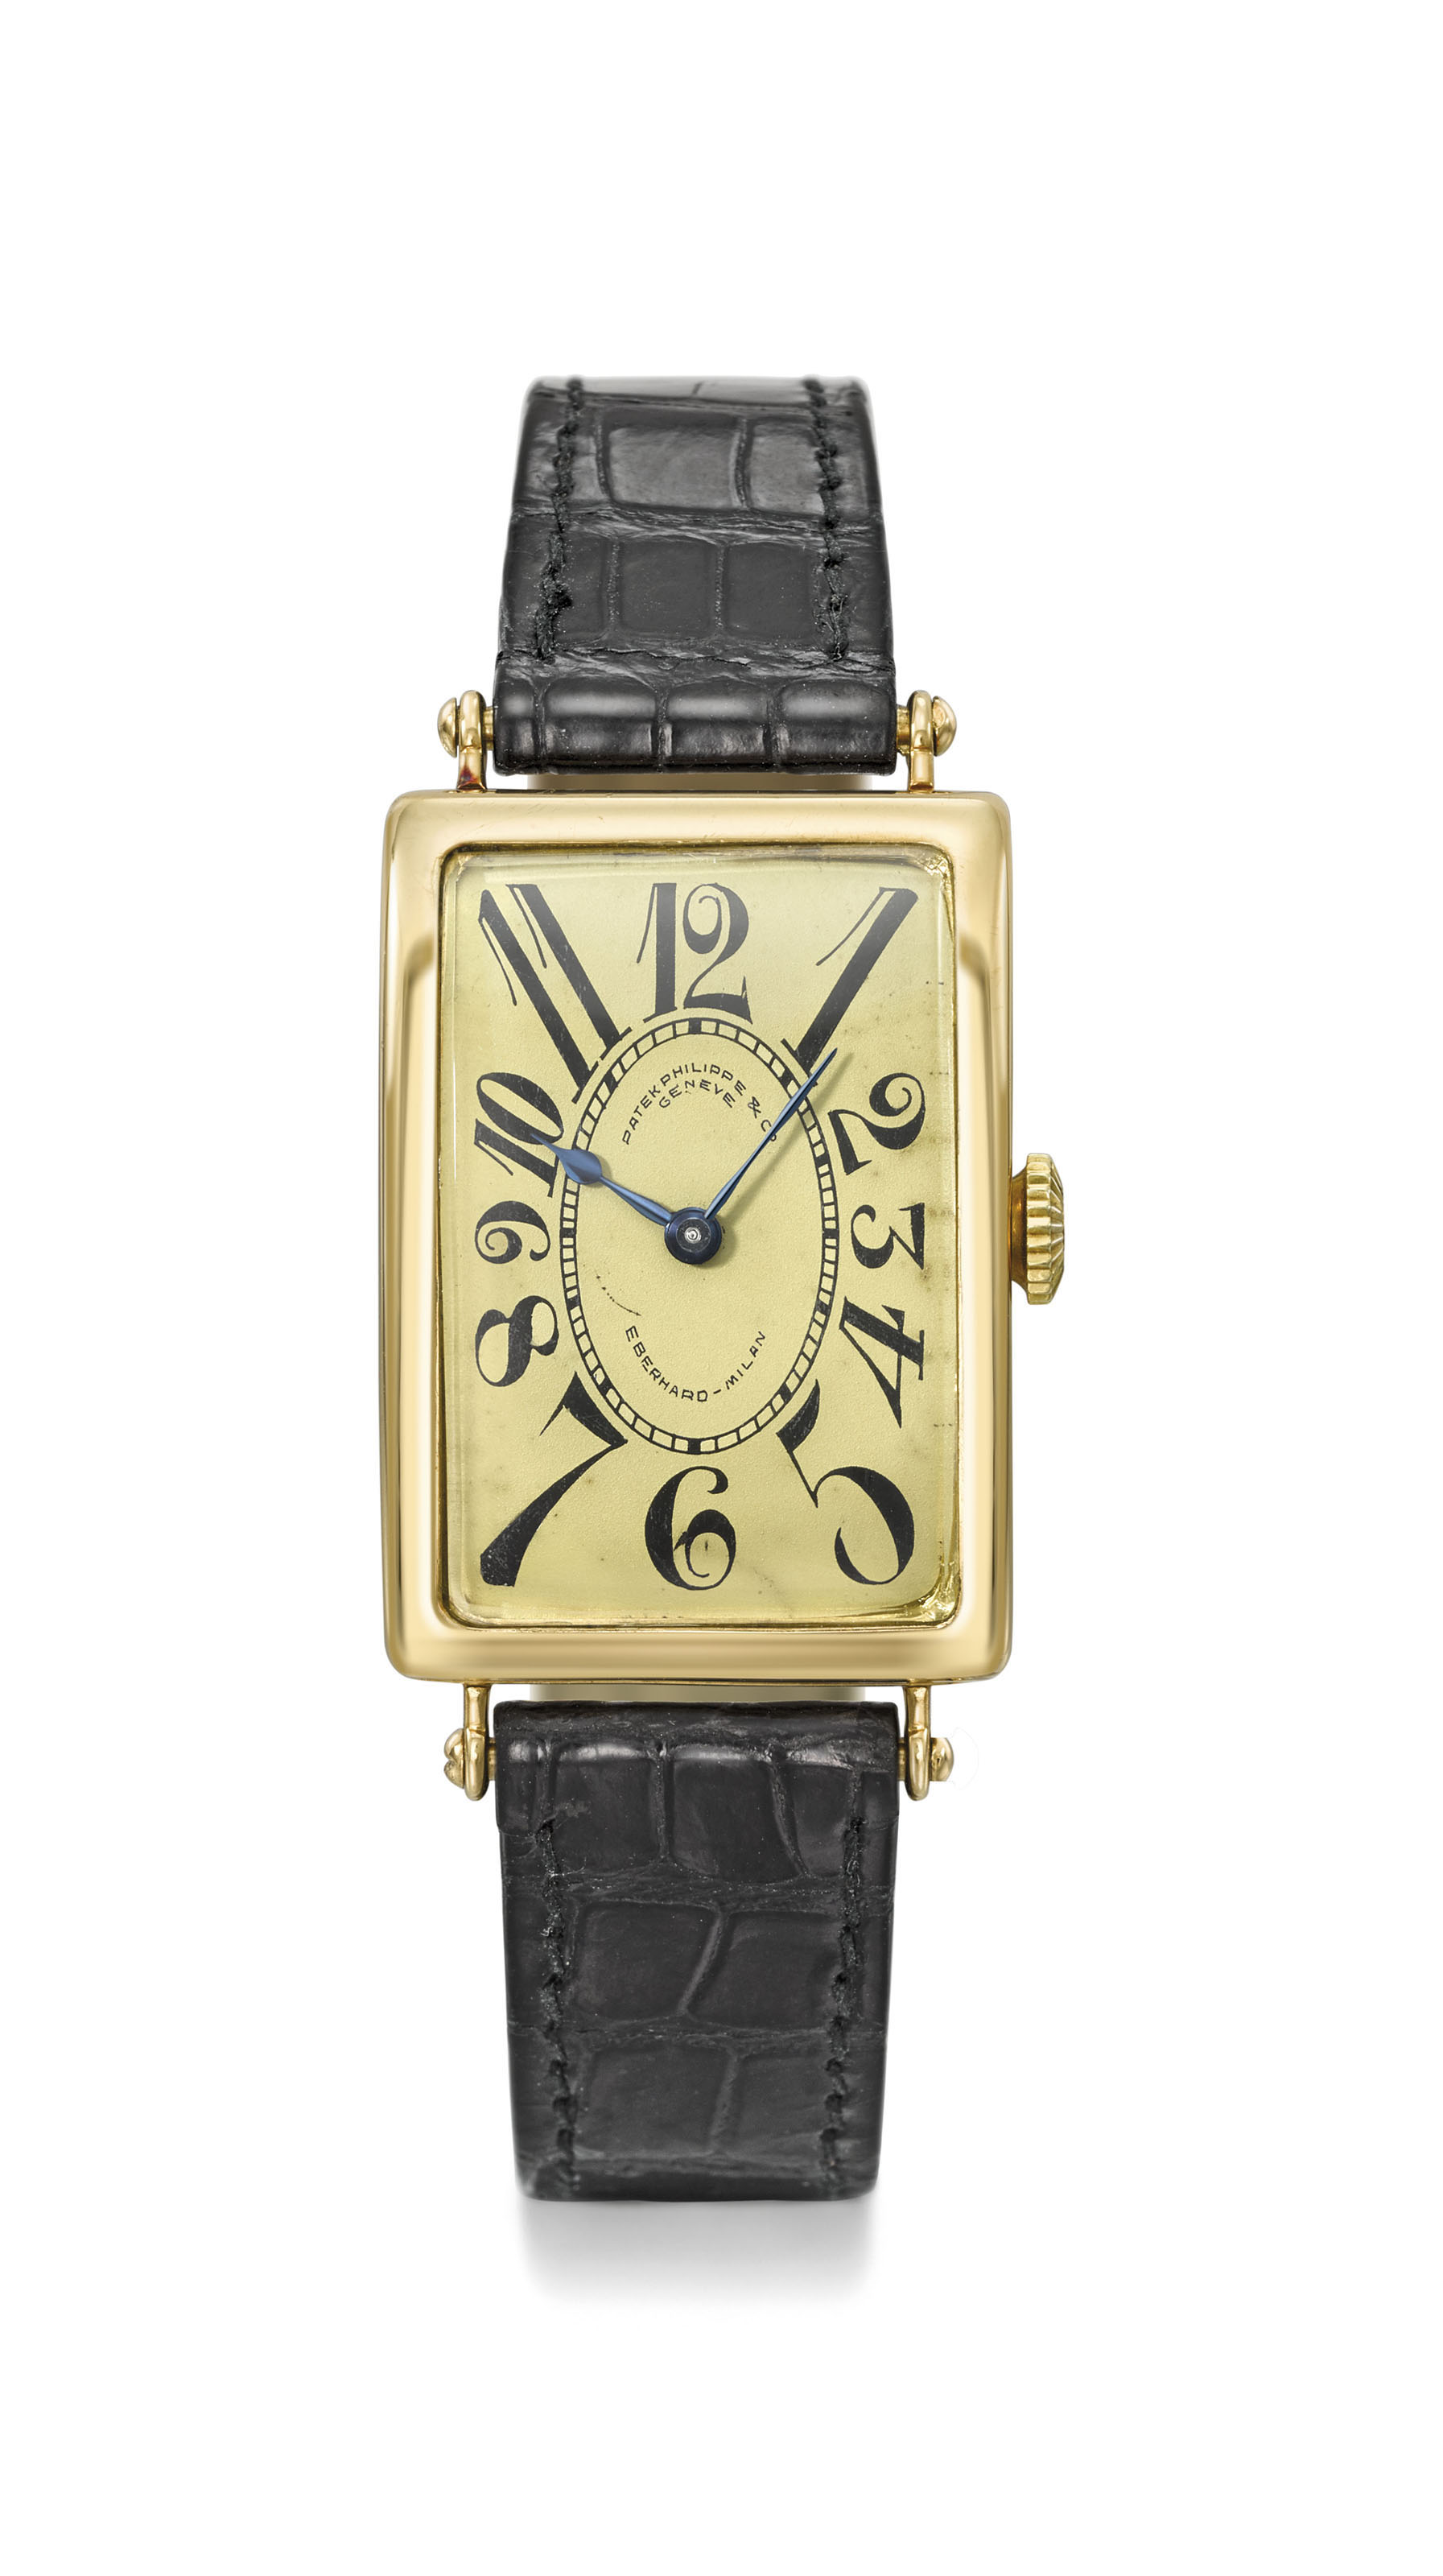 PATEK PHILIPPE A RARE AND